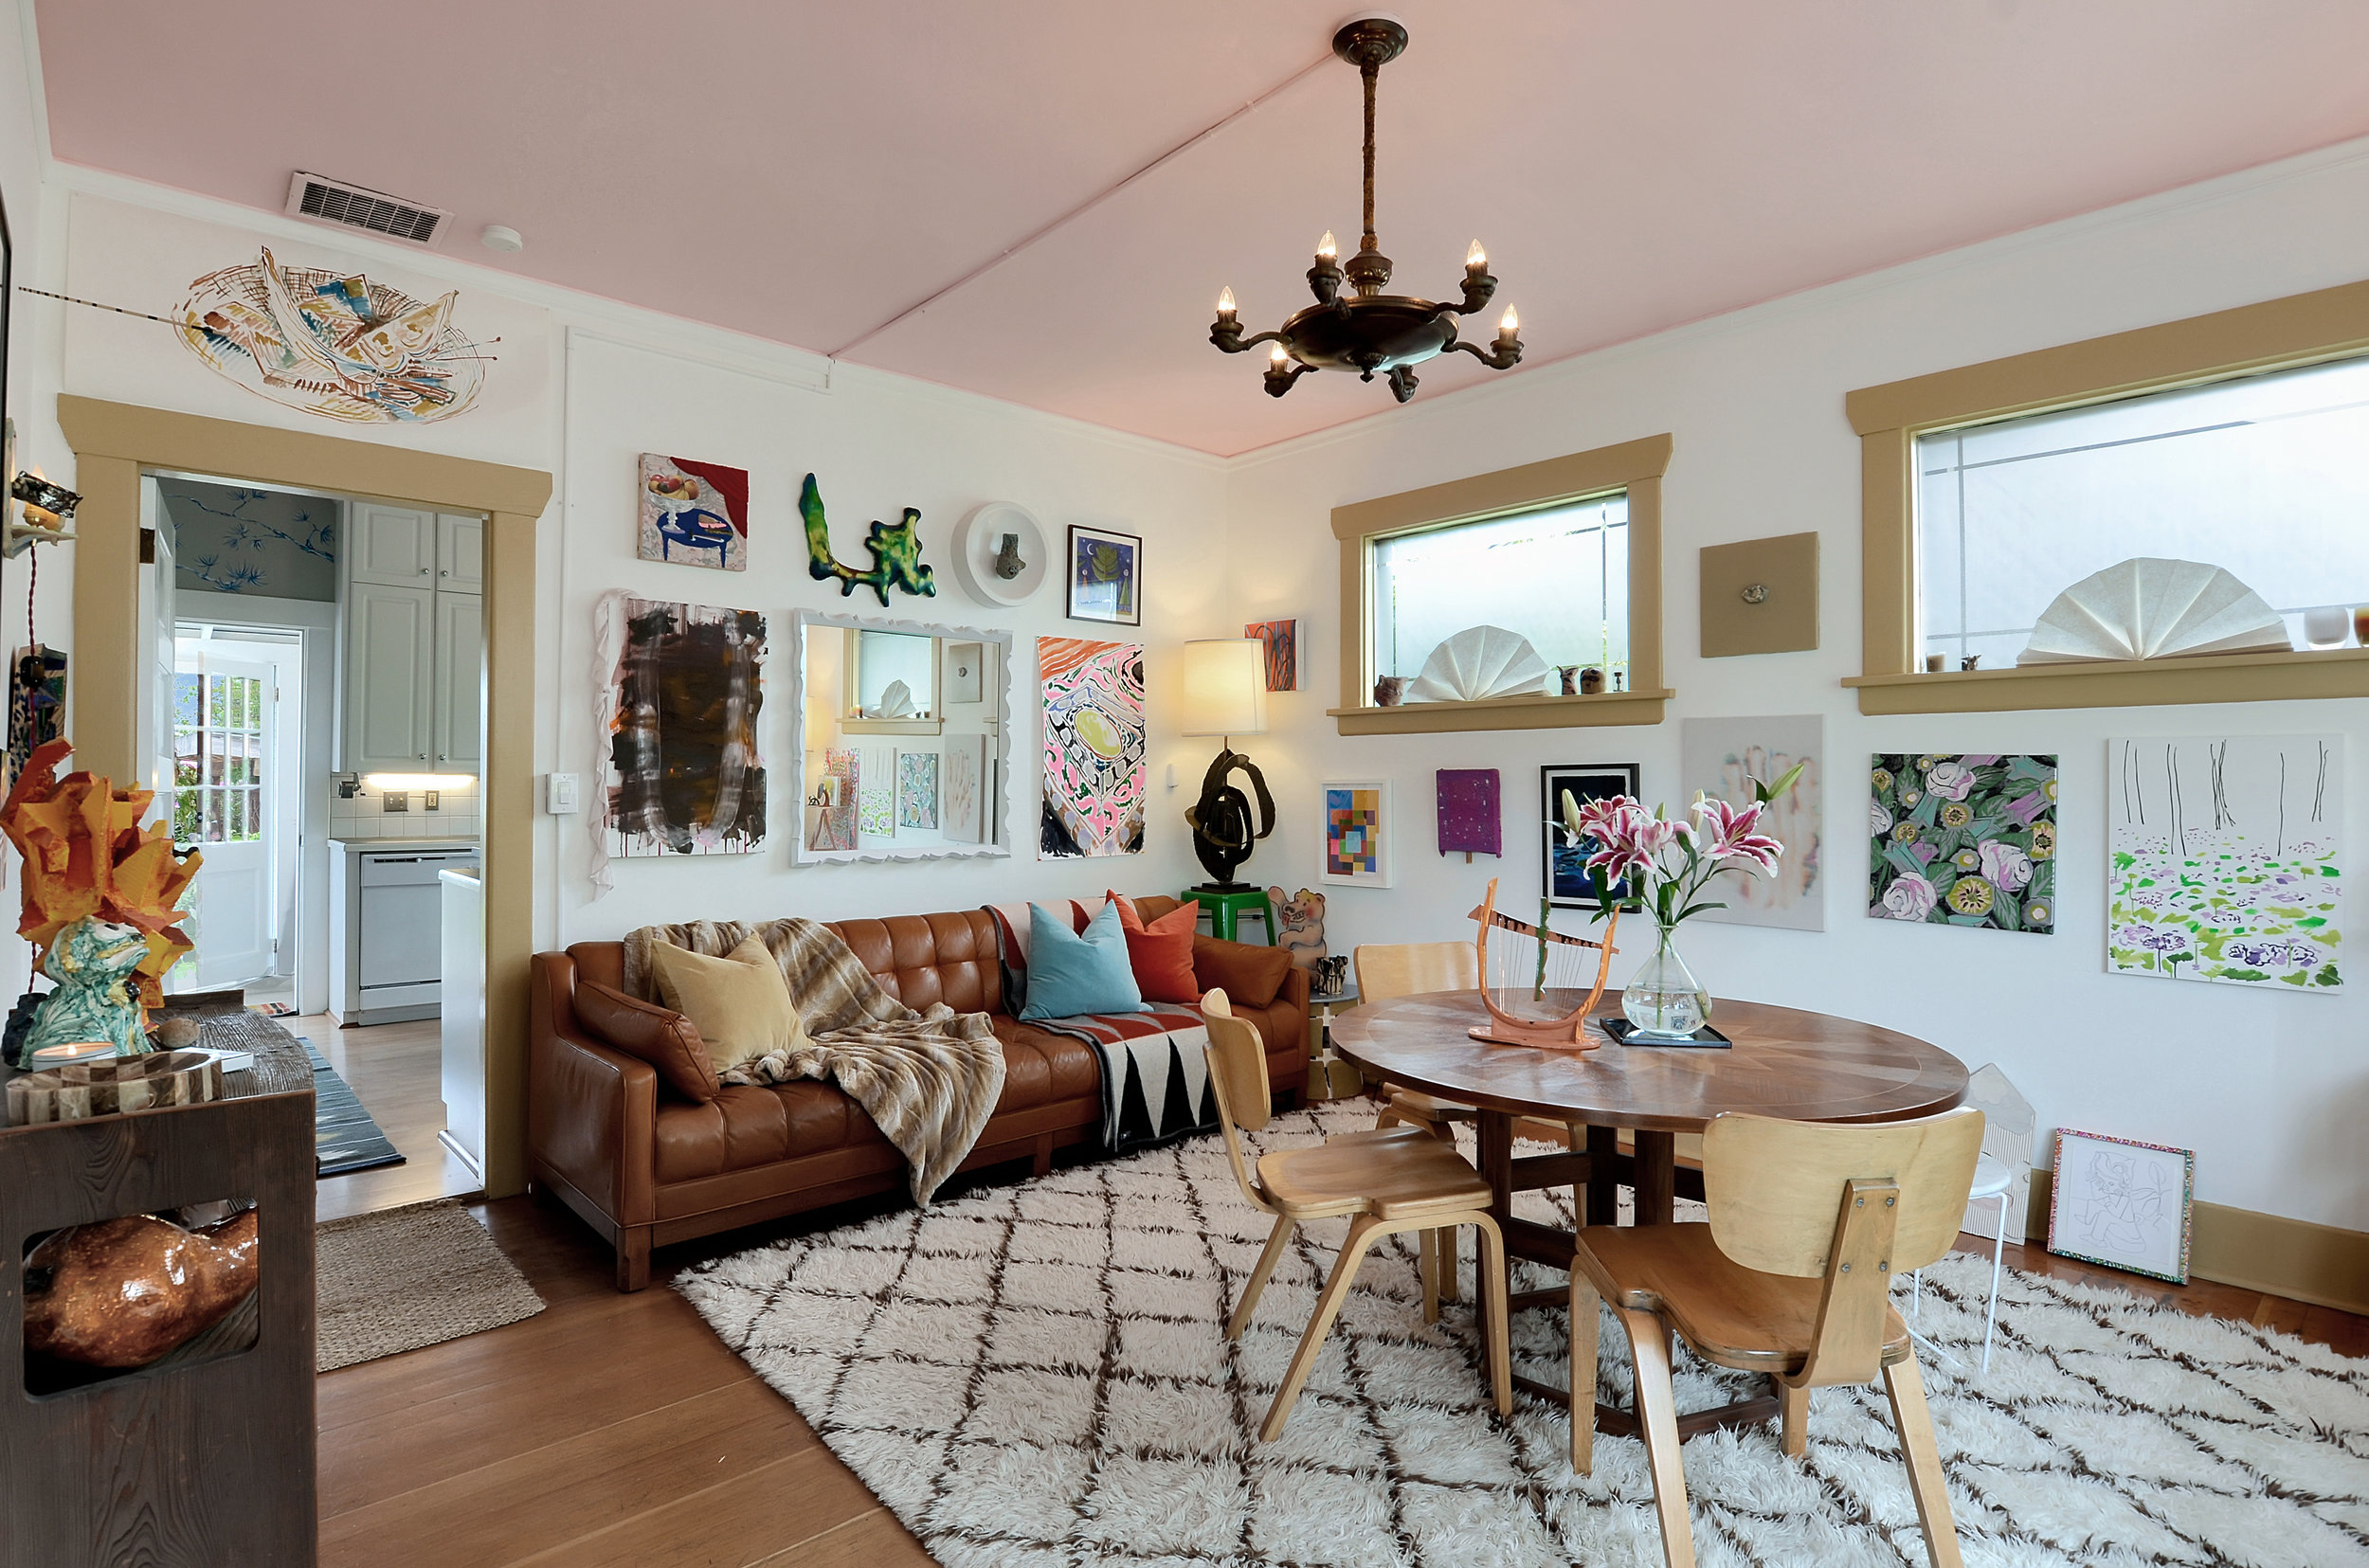 Tall ceilings, lots of natural light, and refinished fir floors create a comfortable living and dining area. The dreamy pink ceiling begs you to let a little fun and happiness into this room. So invite a friend over, lay the colorful rugs down, and open the front door for garden sounds.